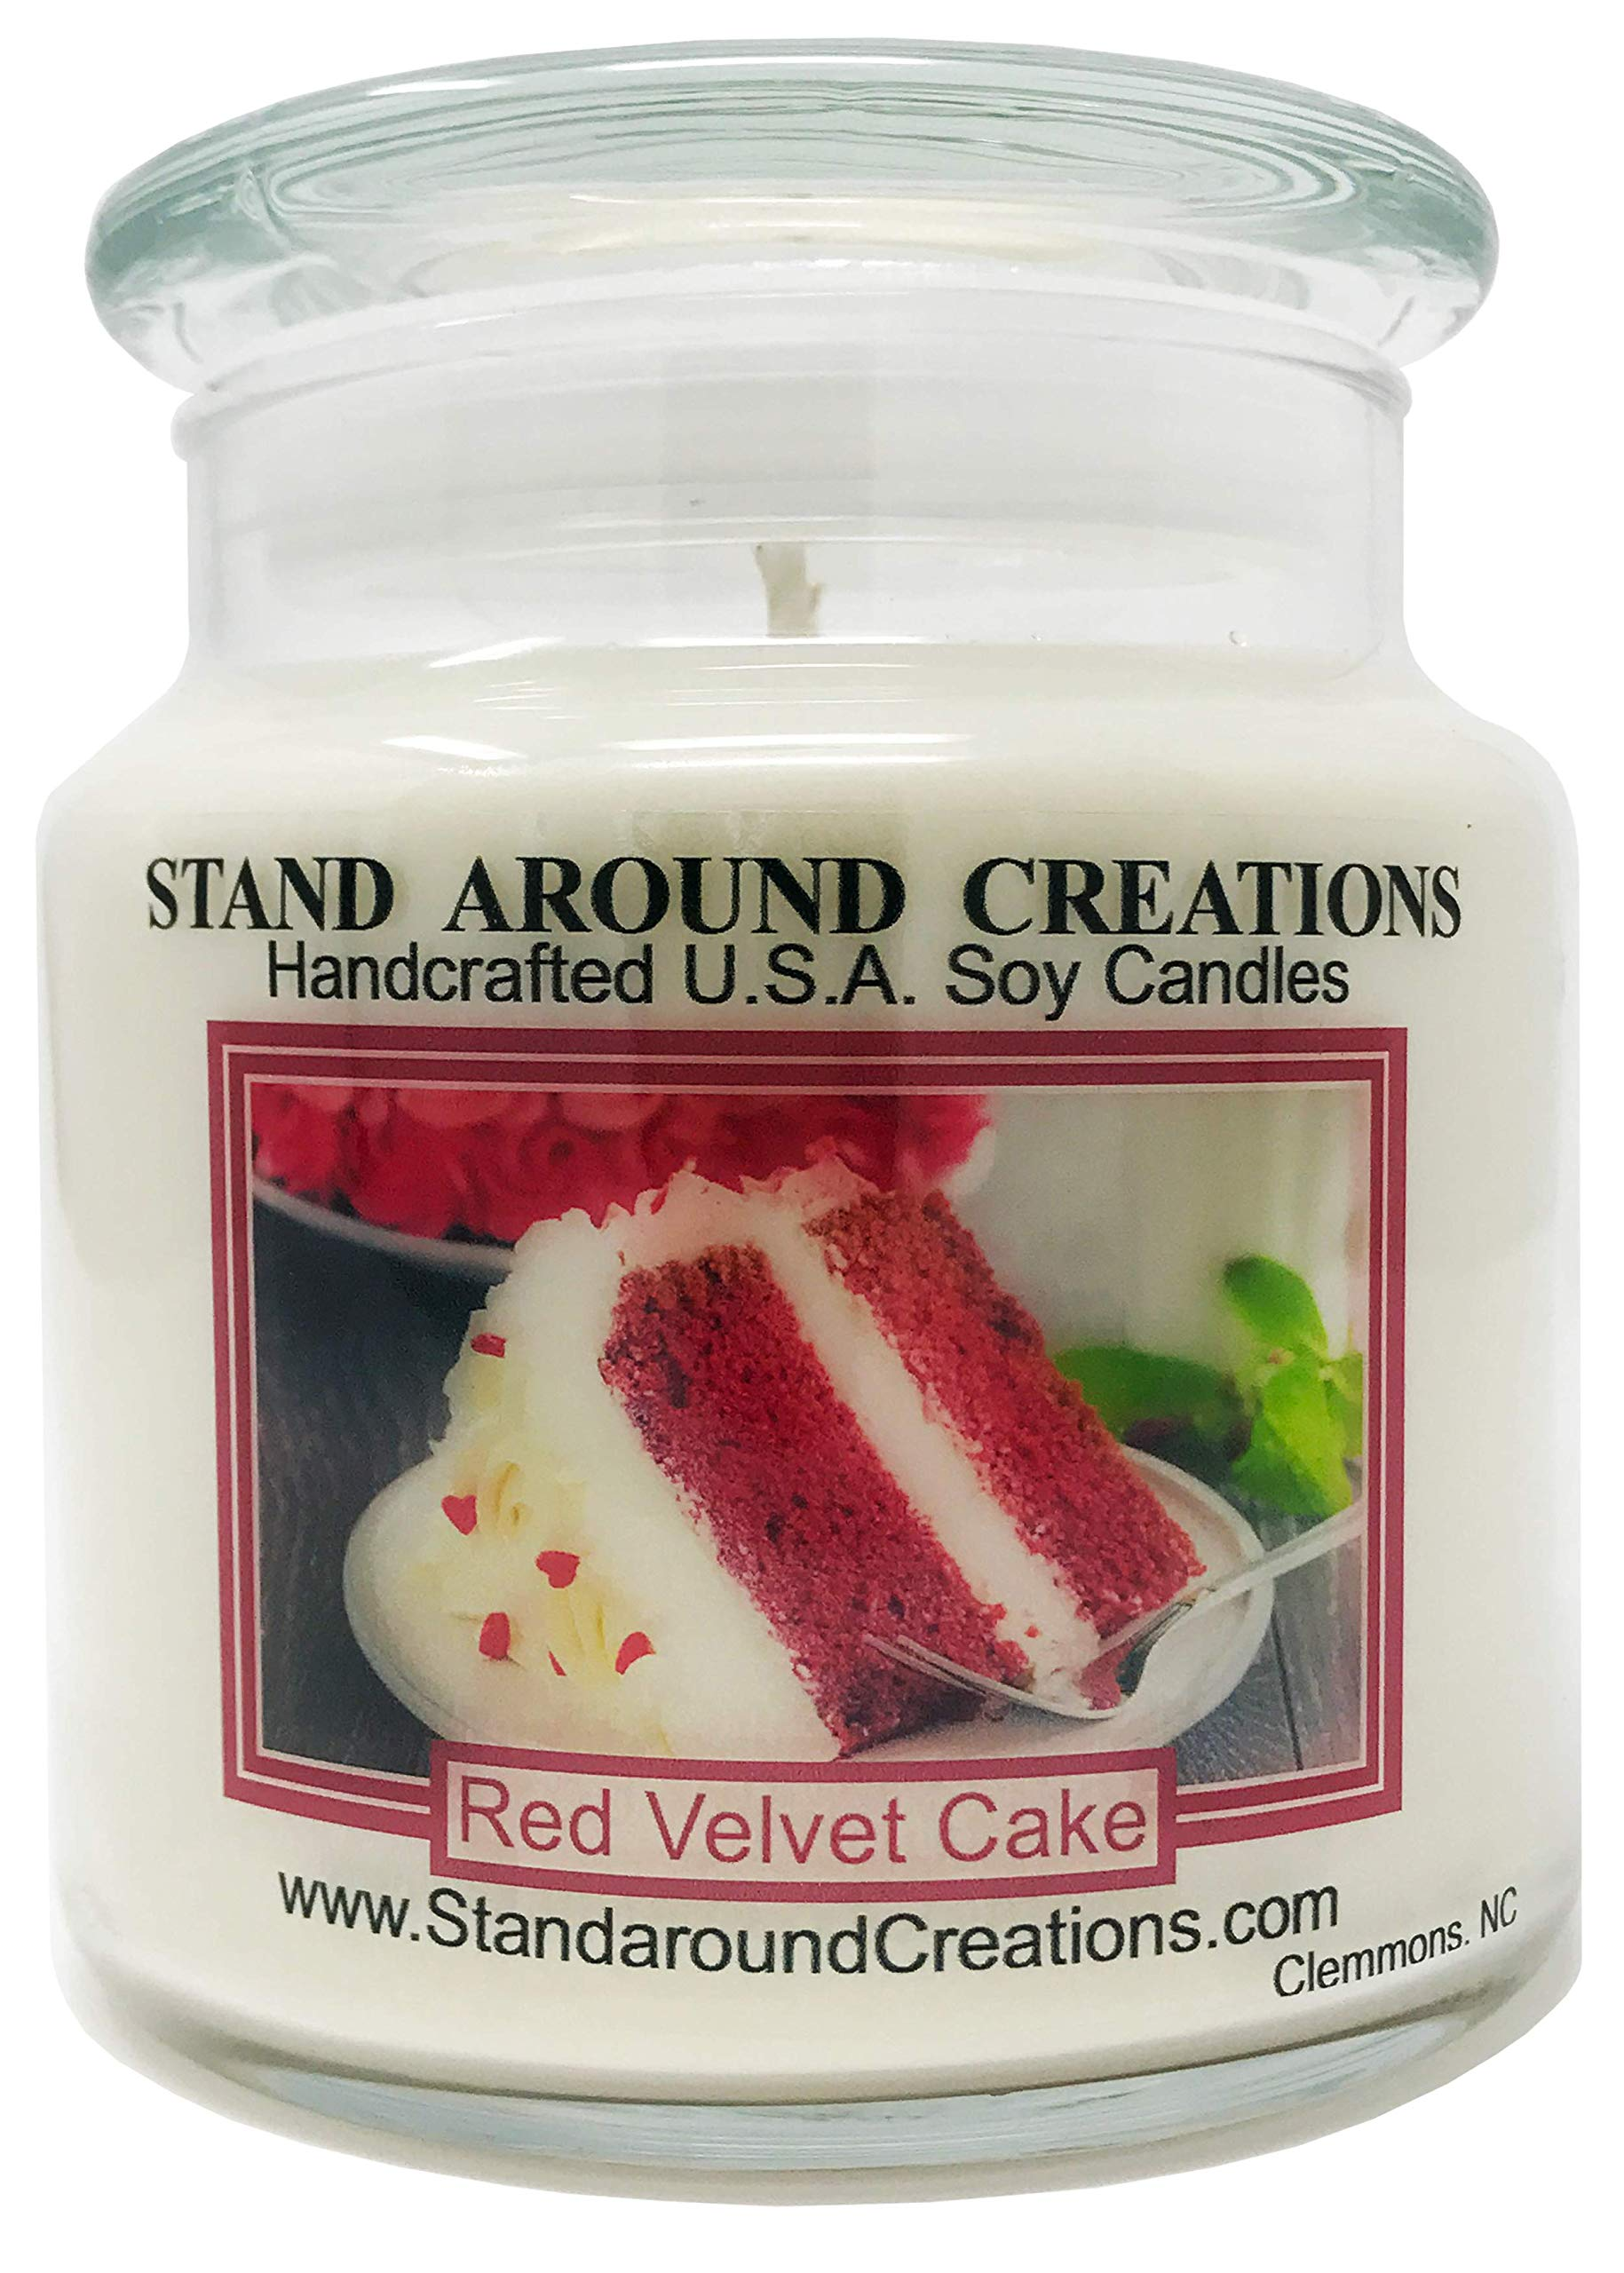 Premium 100% Soy Apothecary Candle - 16 oz. - Red Velvet Cake - A decadent blend of chocolate cake w/sweet cream cheese frosting. by Stand Around Creations (Image #1)